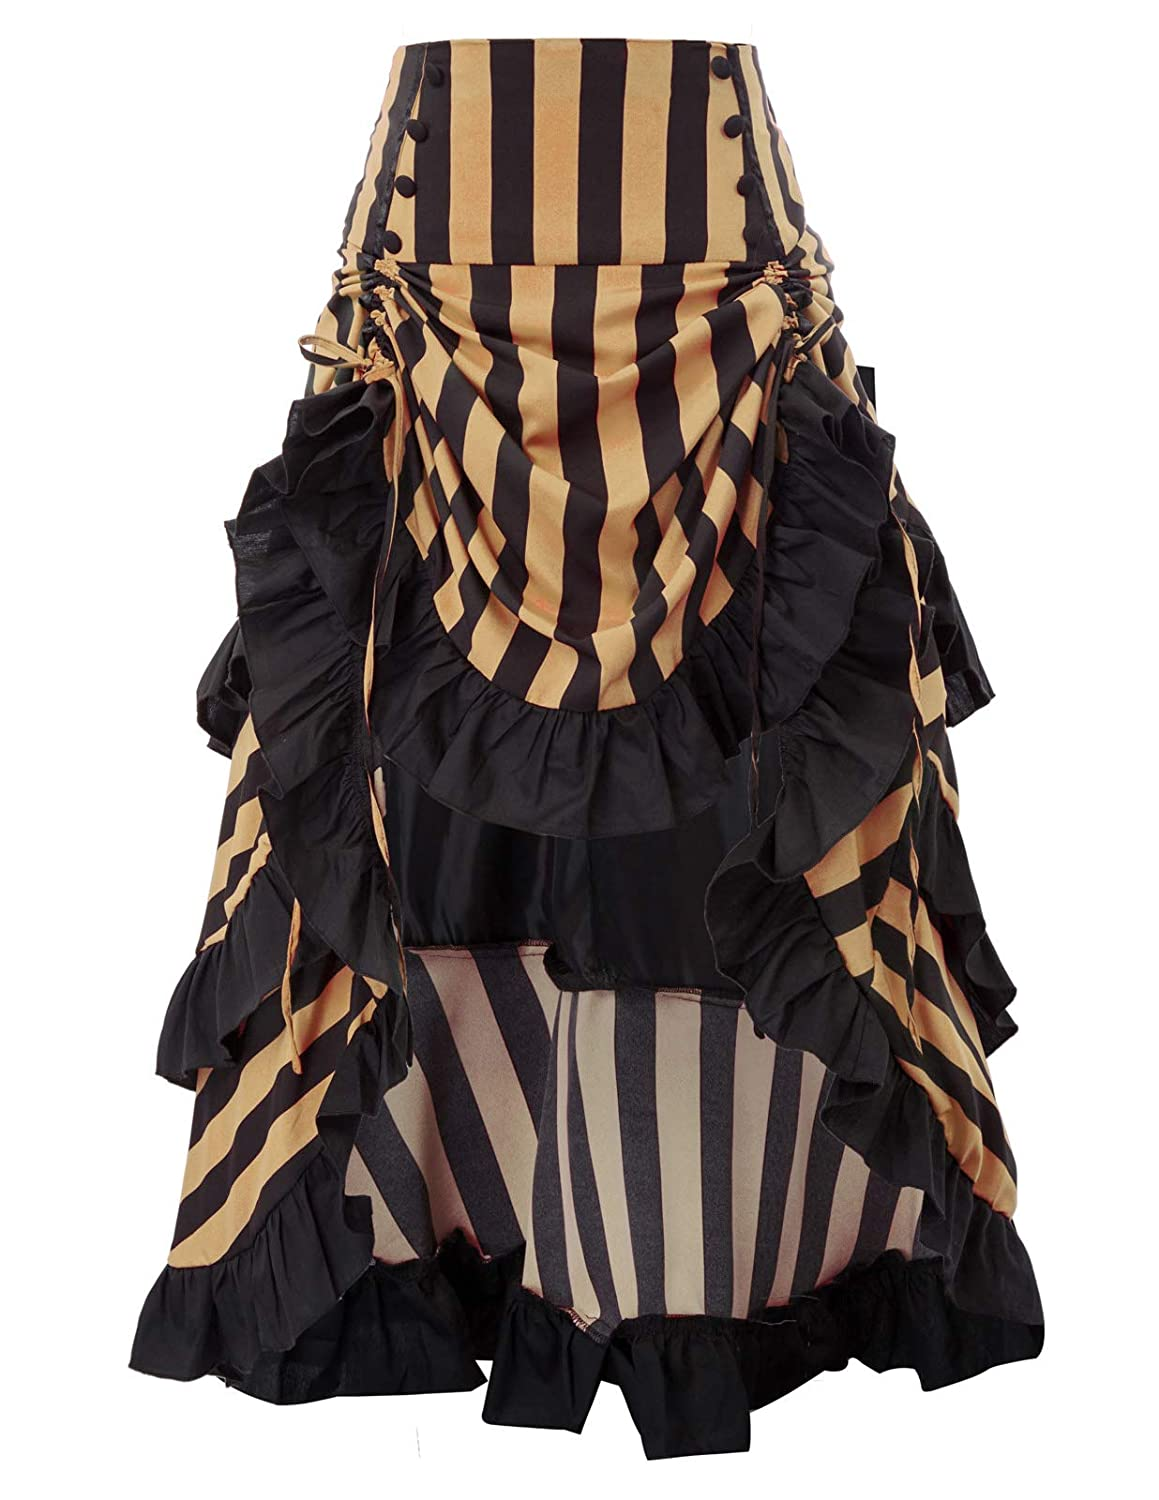 Steampunk Skirts | Bustle Skirts, Lace Skirts, Ruffle Skirts Belle Poque Striped Steampunk Gothic Victorian High Low Skirt Bustle Style $37.99 AT vintagedancer.com